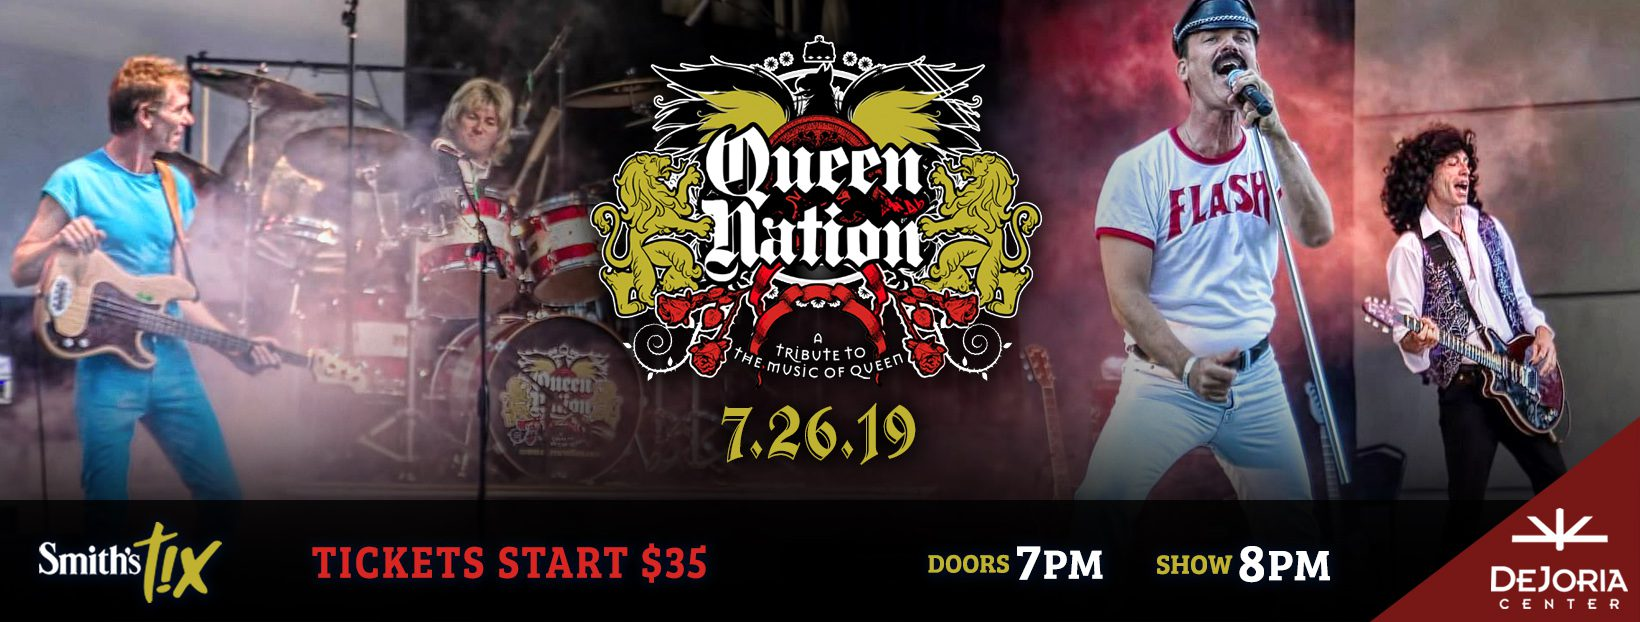 DJC - Queen Nation Facebook Banner